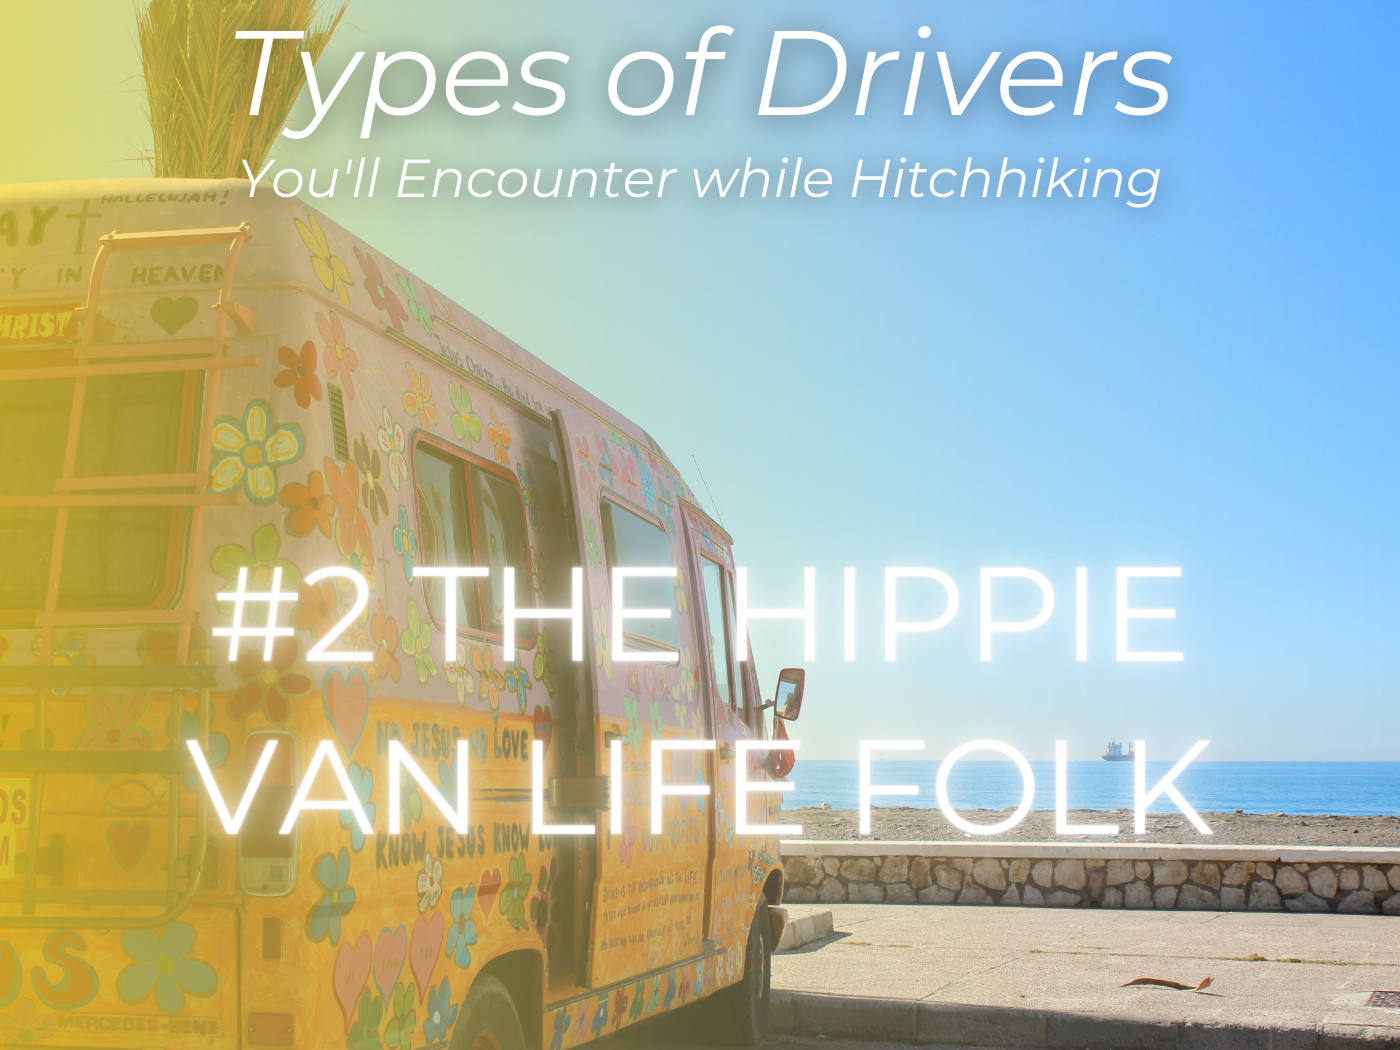 van types of drivers you'll hitch with hippie van life folk